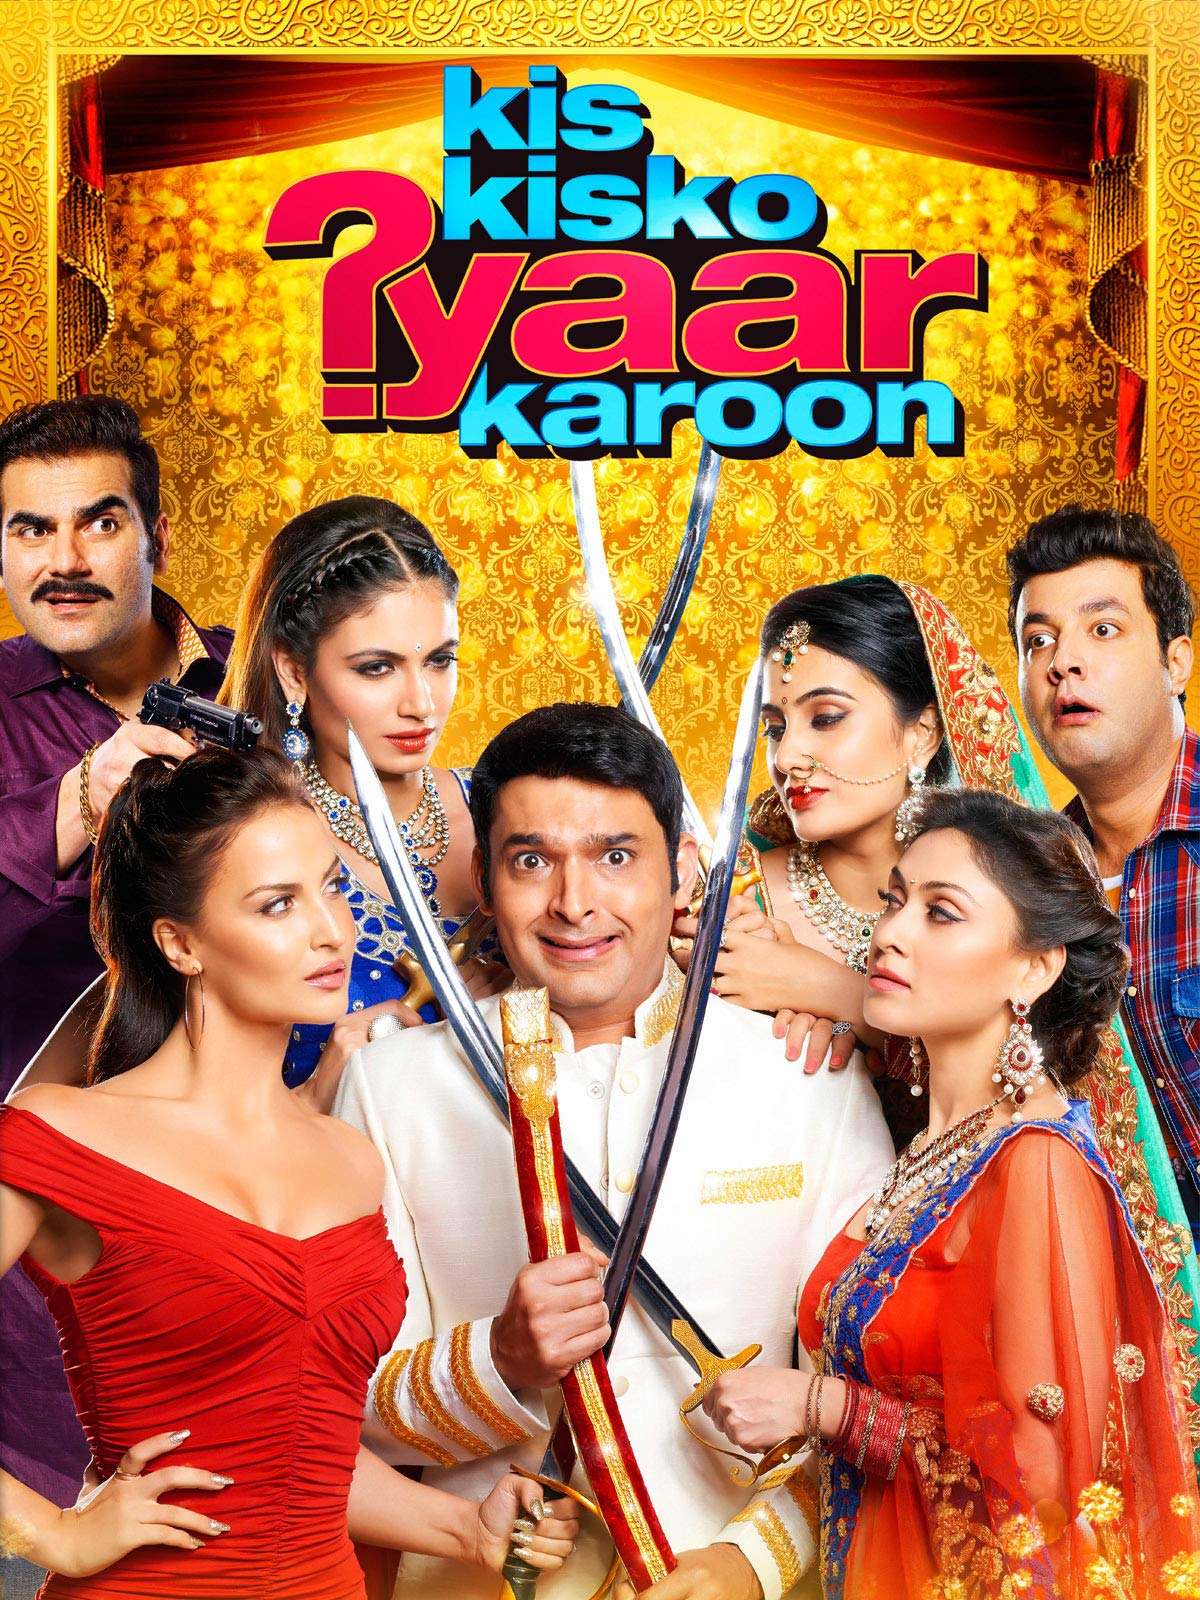 Kis Kisko Pyaar Karoon (2015) Hindi 720p WEB-DL 1.1GB ESubs